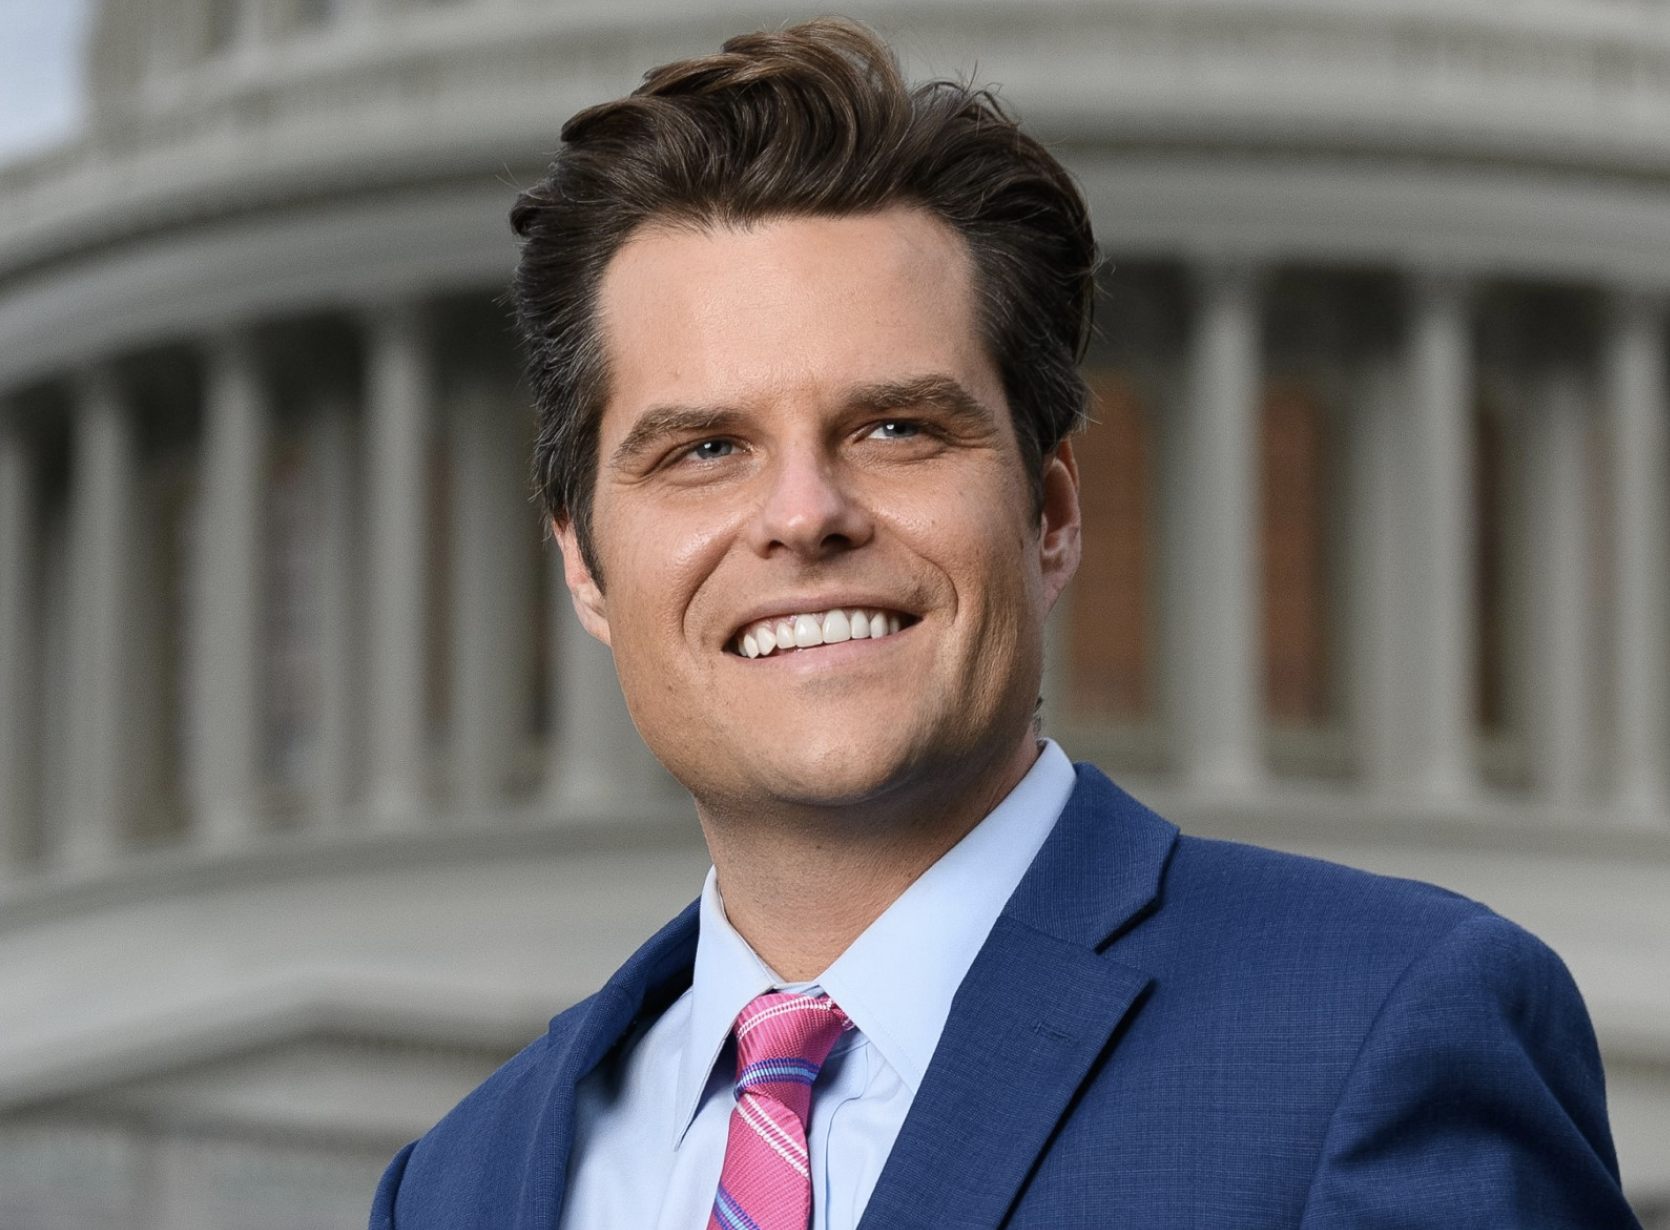 Matt Gaetz: 'Washington scandal cycles are predictable, and sex is especially potent in politics'